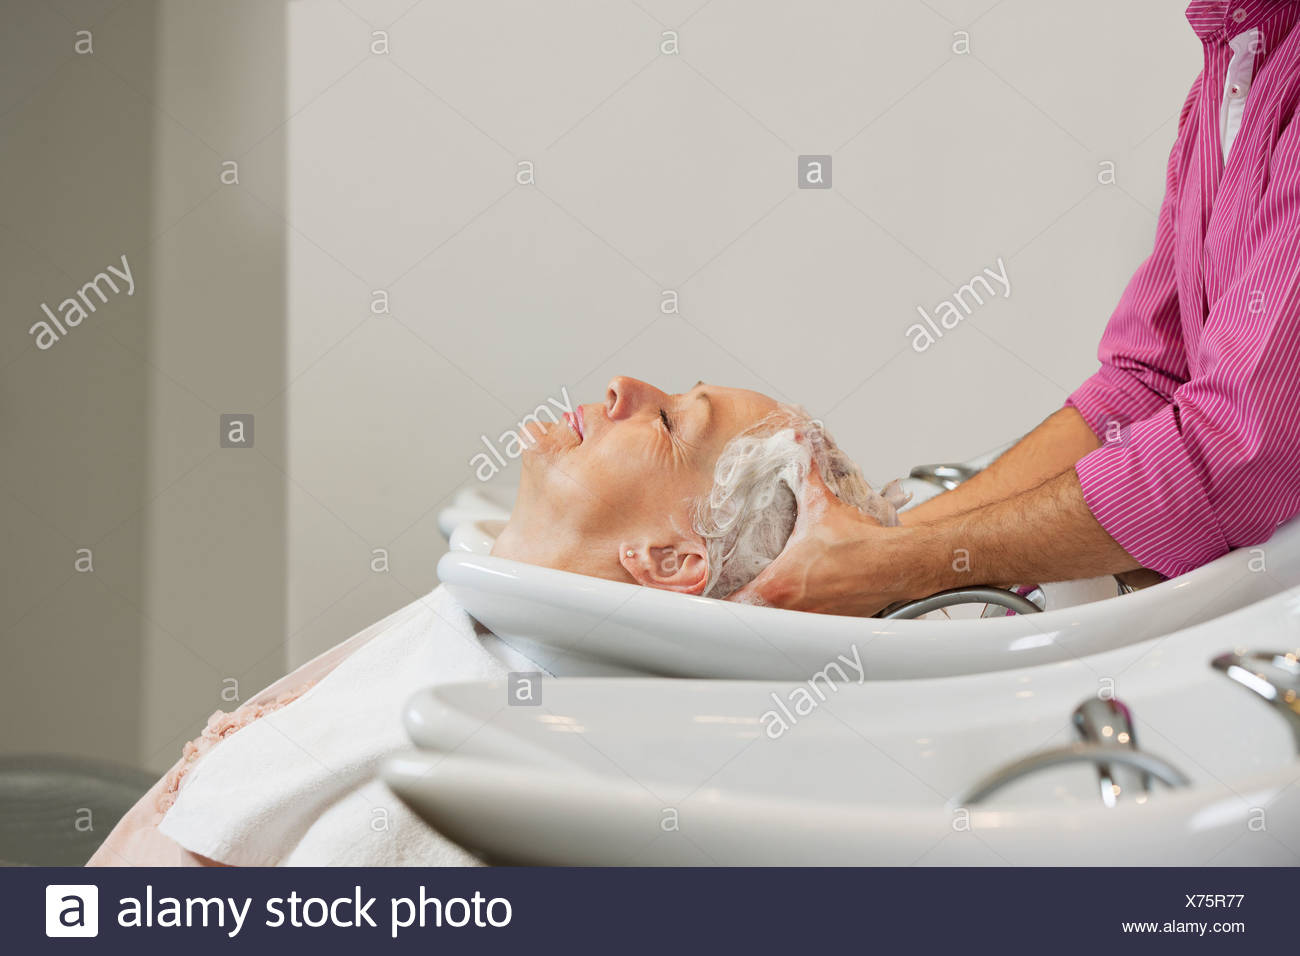 A senior woman having her hair shampooed at a hairdressing salon, close up - Stock Image